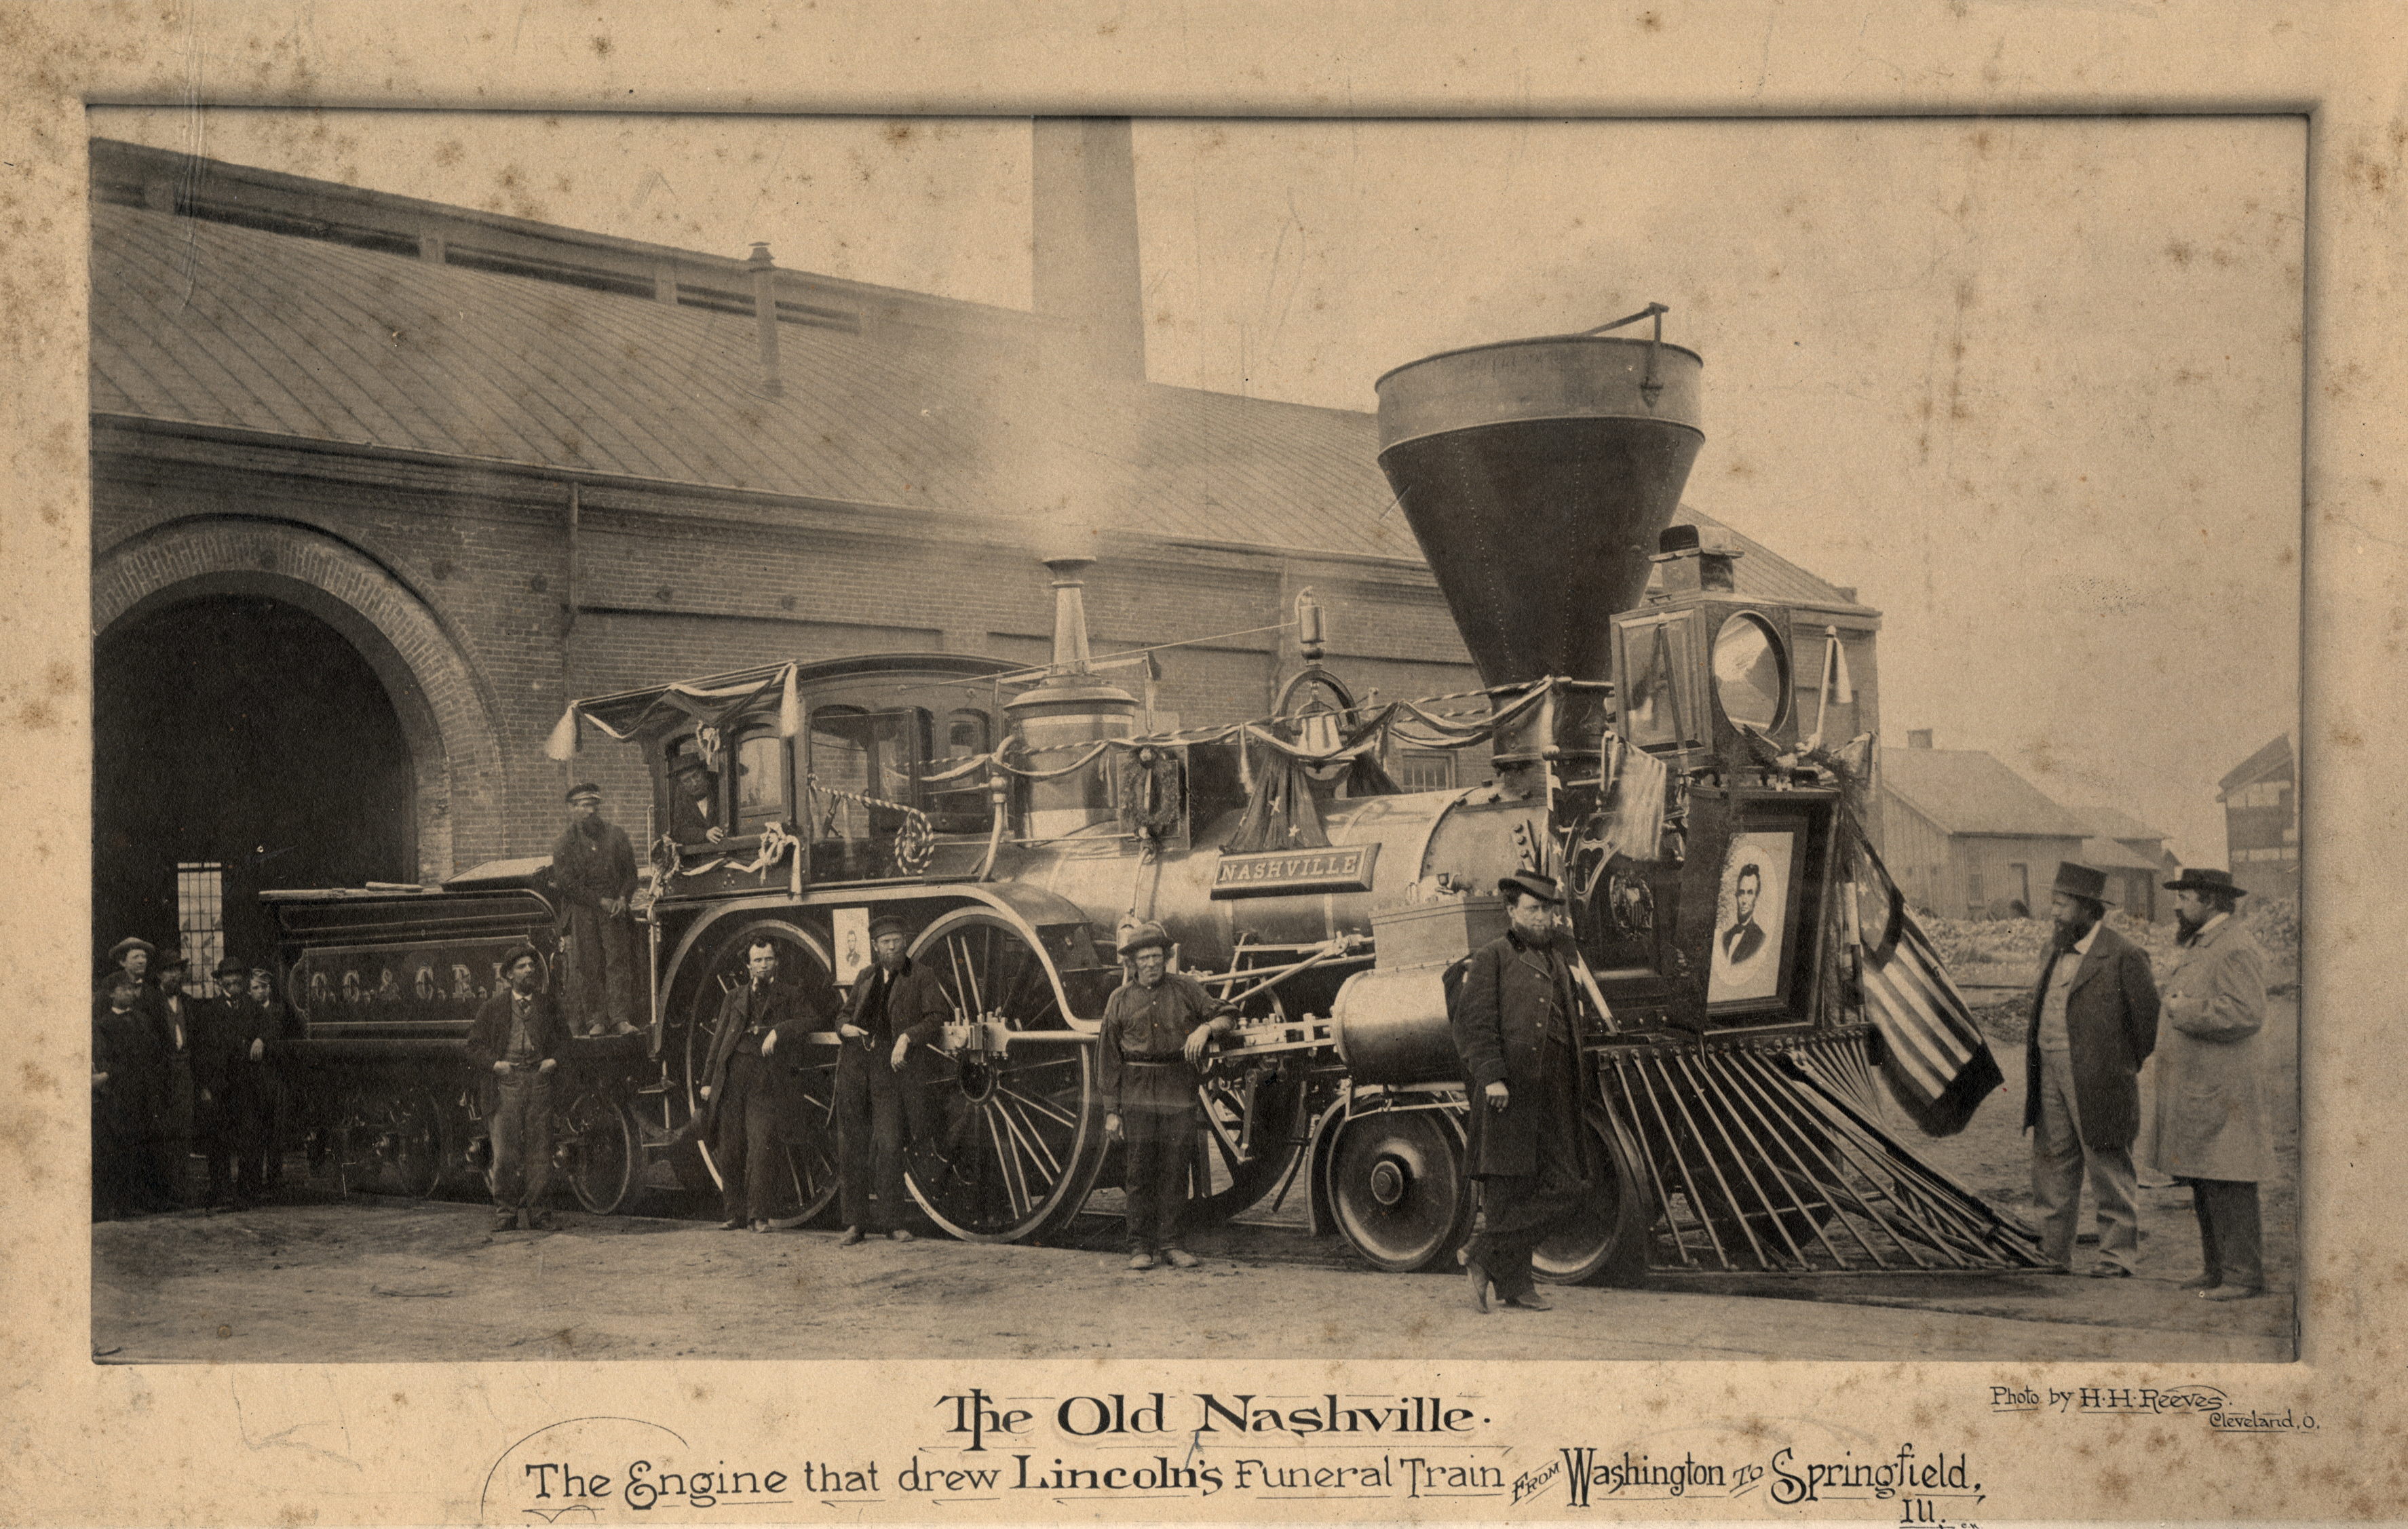 The Old Nashville / The Engine that Drew Lincoln's Funeral Train from Washington, D.C. to Springfield, ILL.